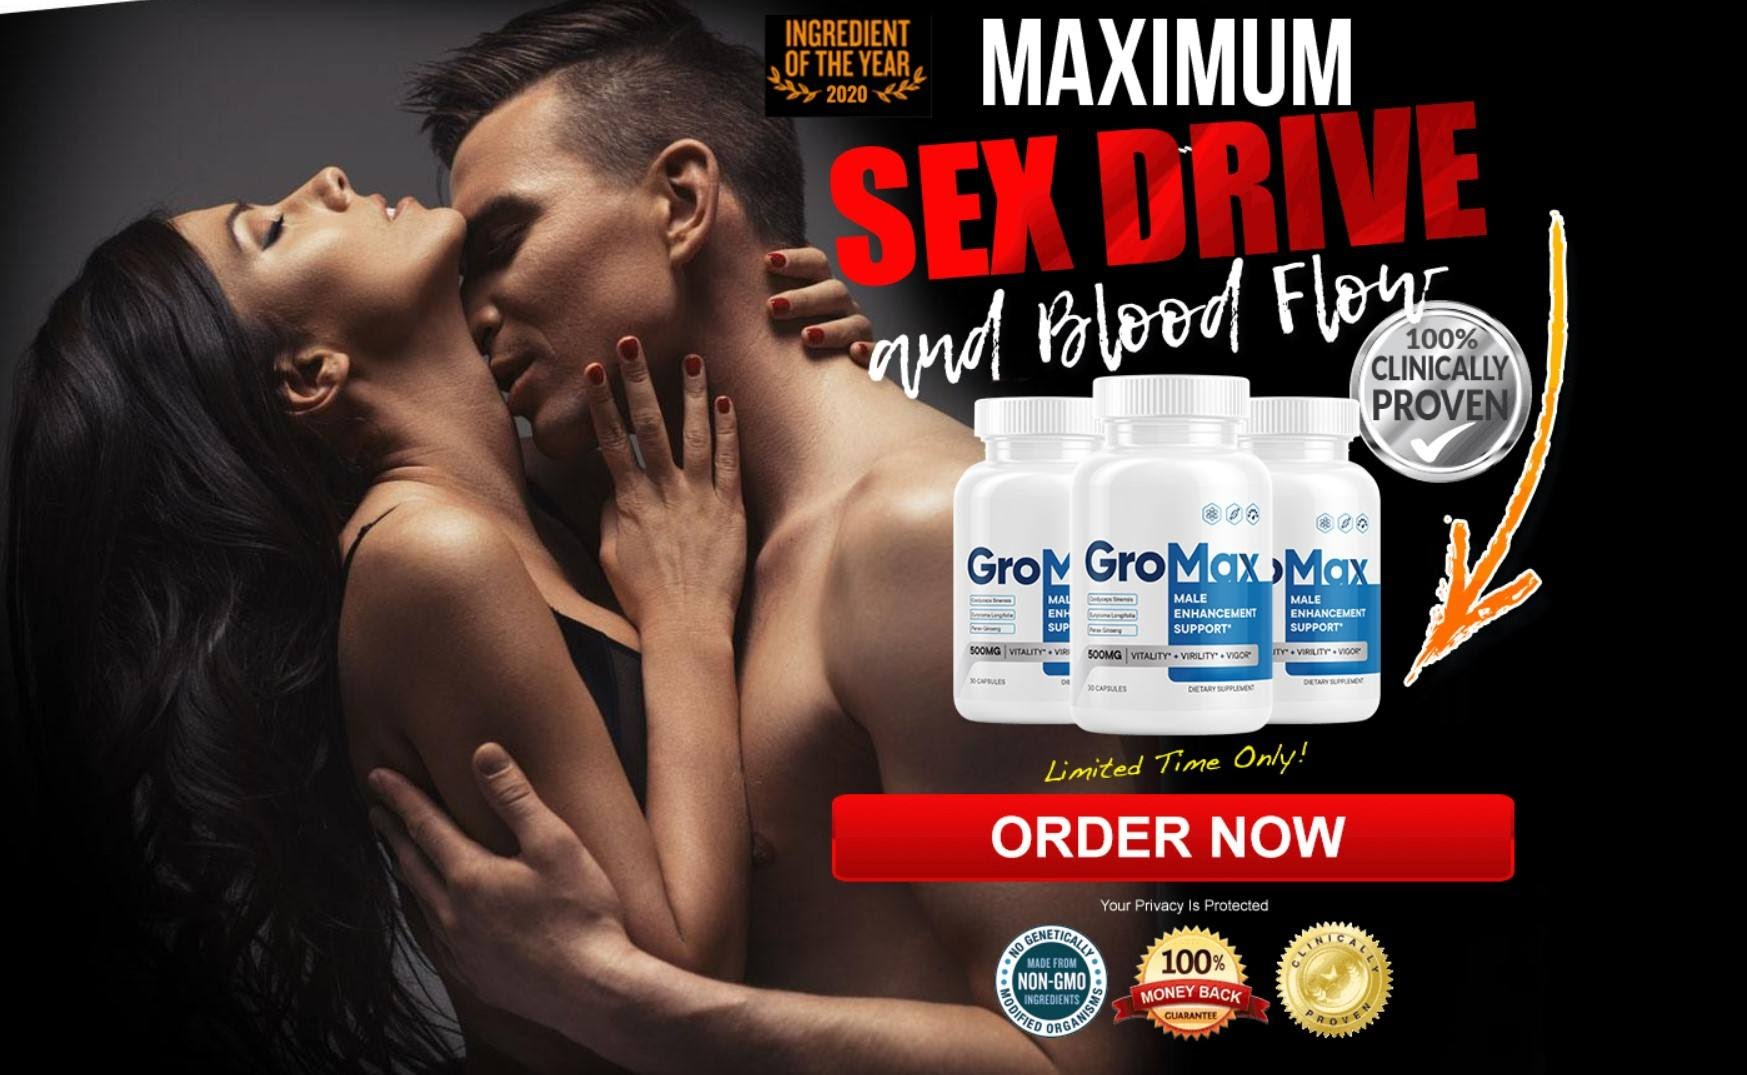 GroMax Male Enhancement Support *GroMax Pills*Increase Blood Flow & Elevate Physical Performance! - Pills Offer